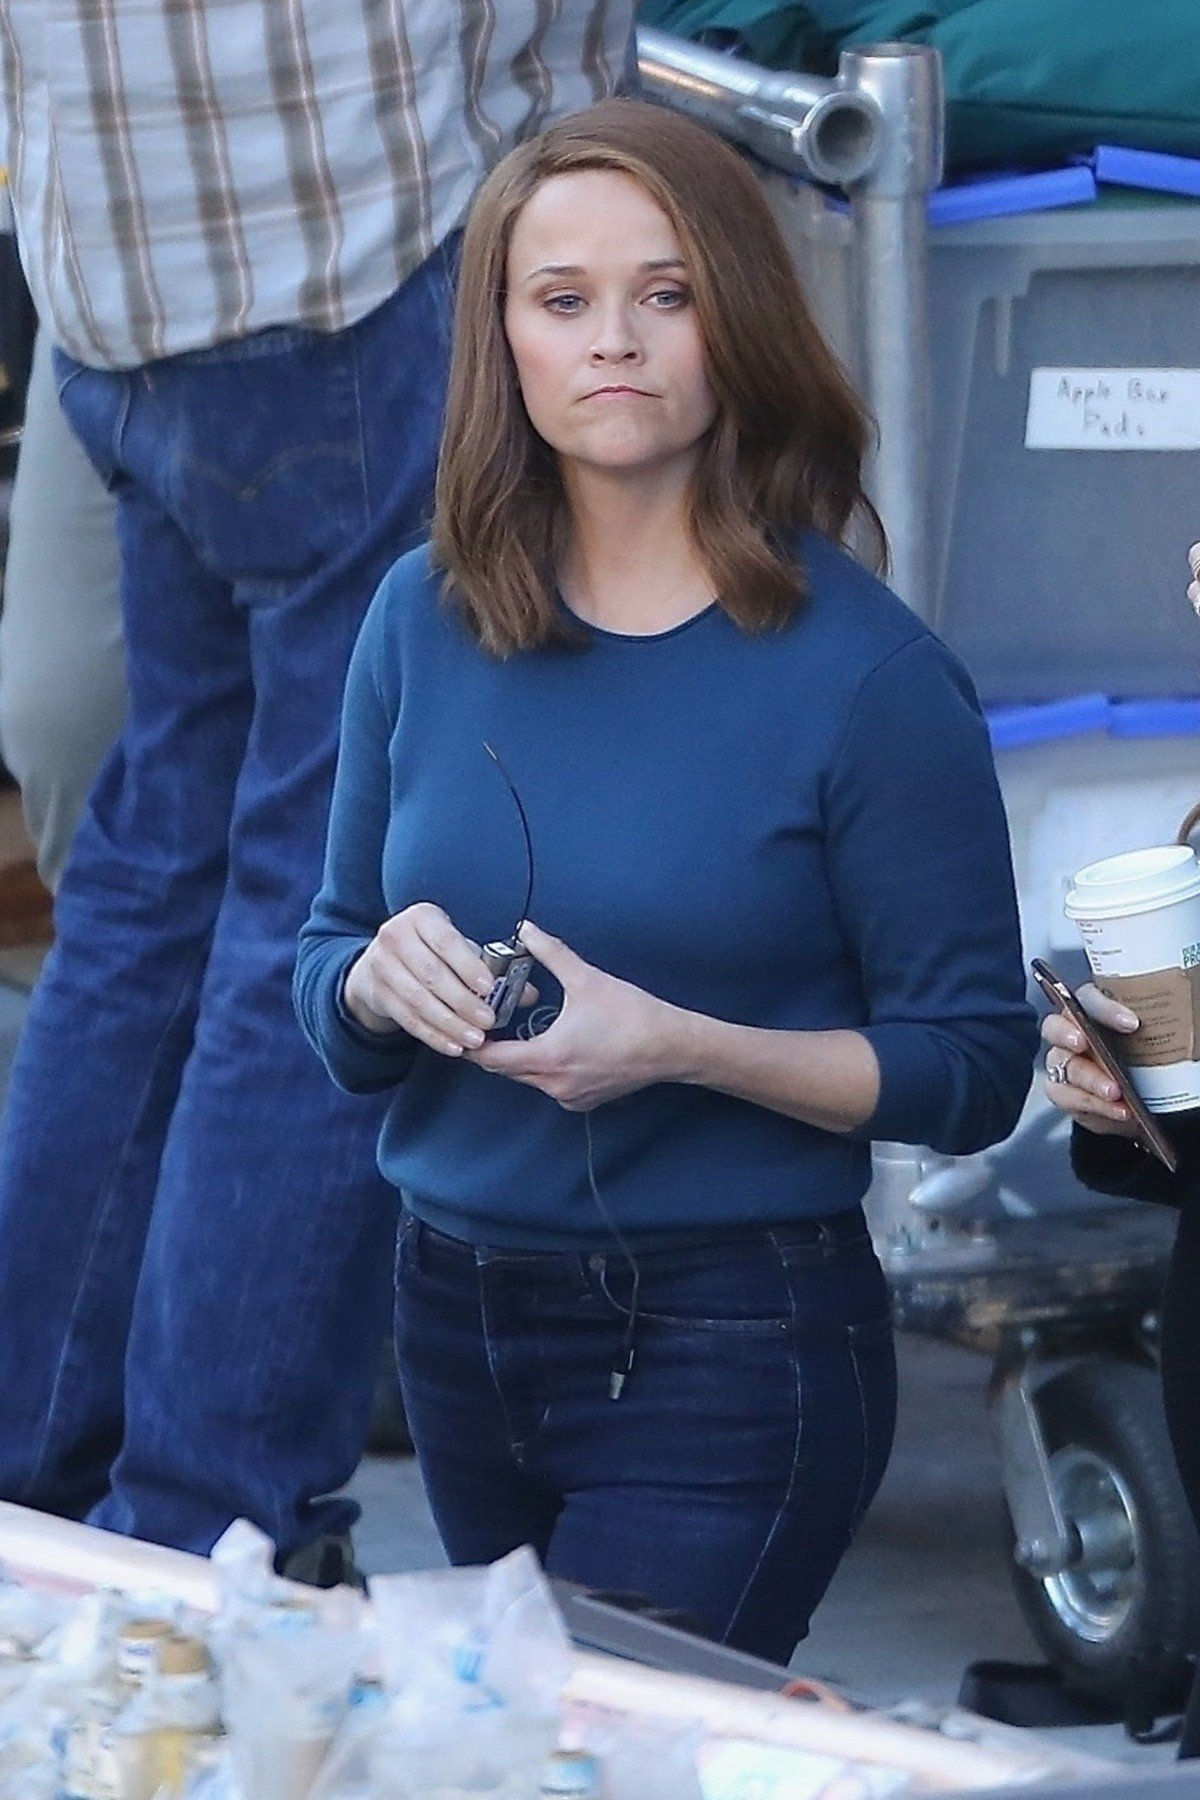 Los Angeles, CA  - *EXCLUSIVE*  - Reese Witherspoon shows off her brunette 'do for filming on 'The Morning Show.'  Pictured: Reese Witherspoon  BACKGRID USA 25 APRIL 2019, Image: 428391459, License: Rights-managed, Restrictions: , Model Release: no, Credit line: Profimedia, Backgrid USA